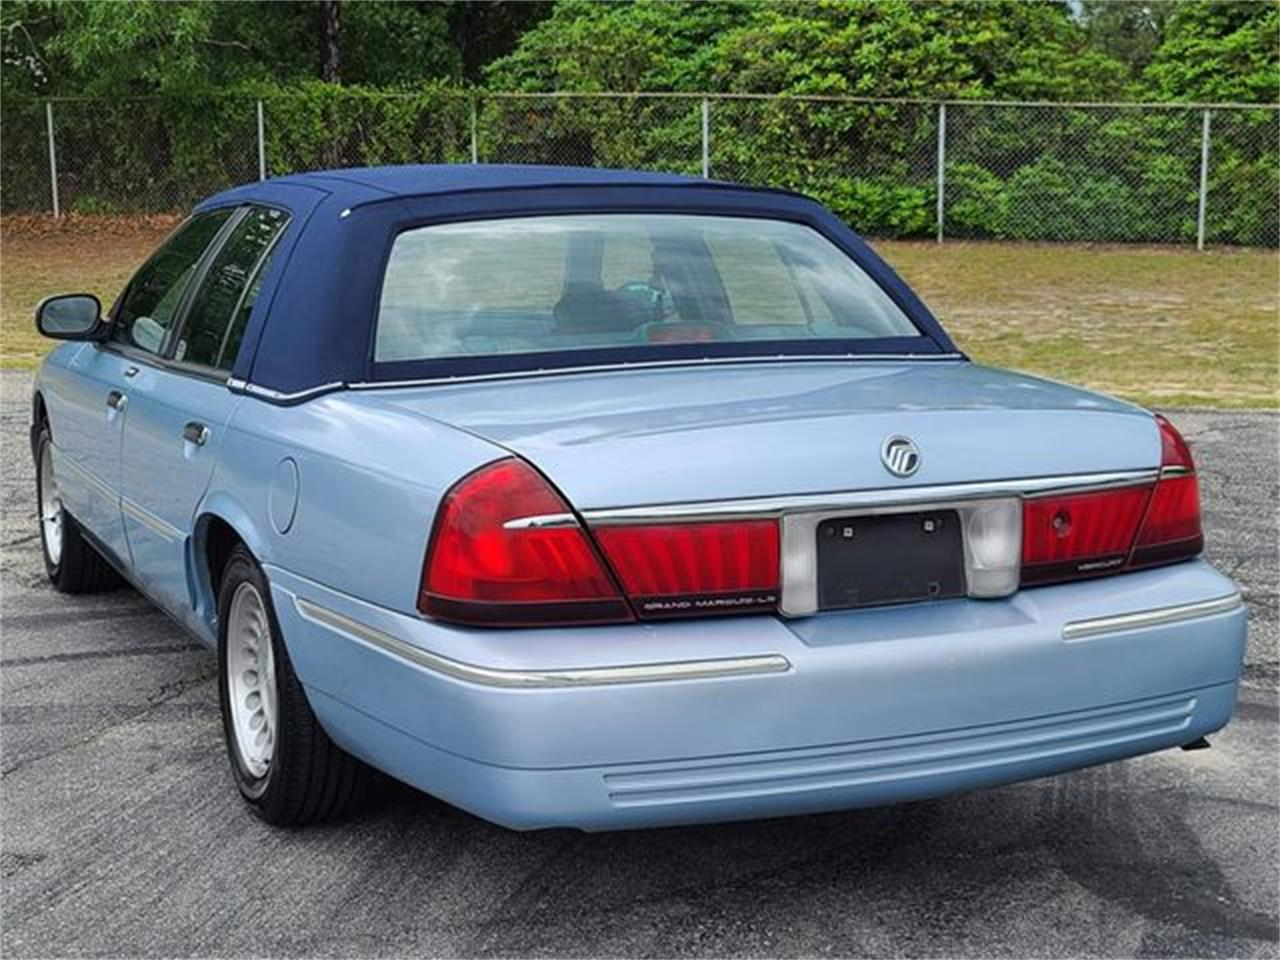 2002 Mercury Grand Marquis (CC-1353996) for sale in Hope Mills, North Carolina